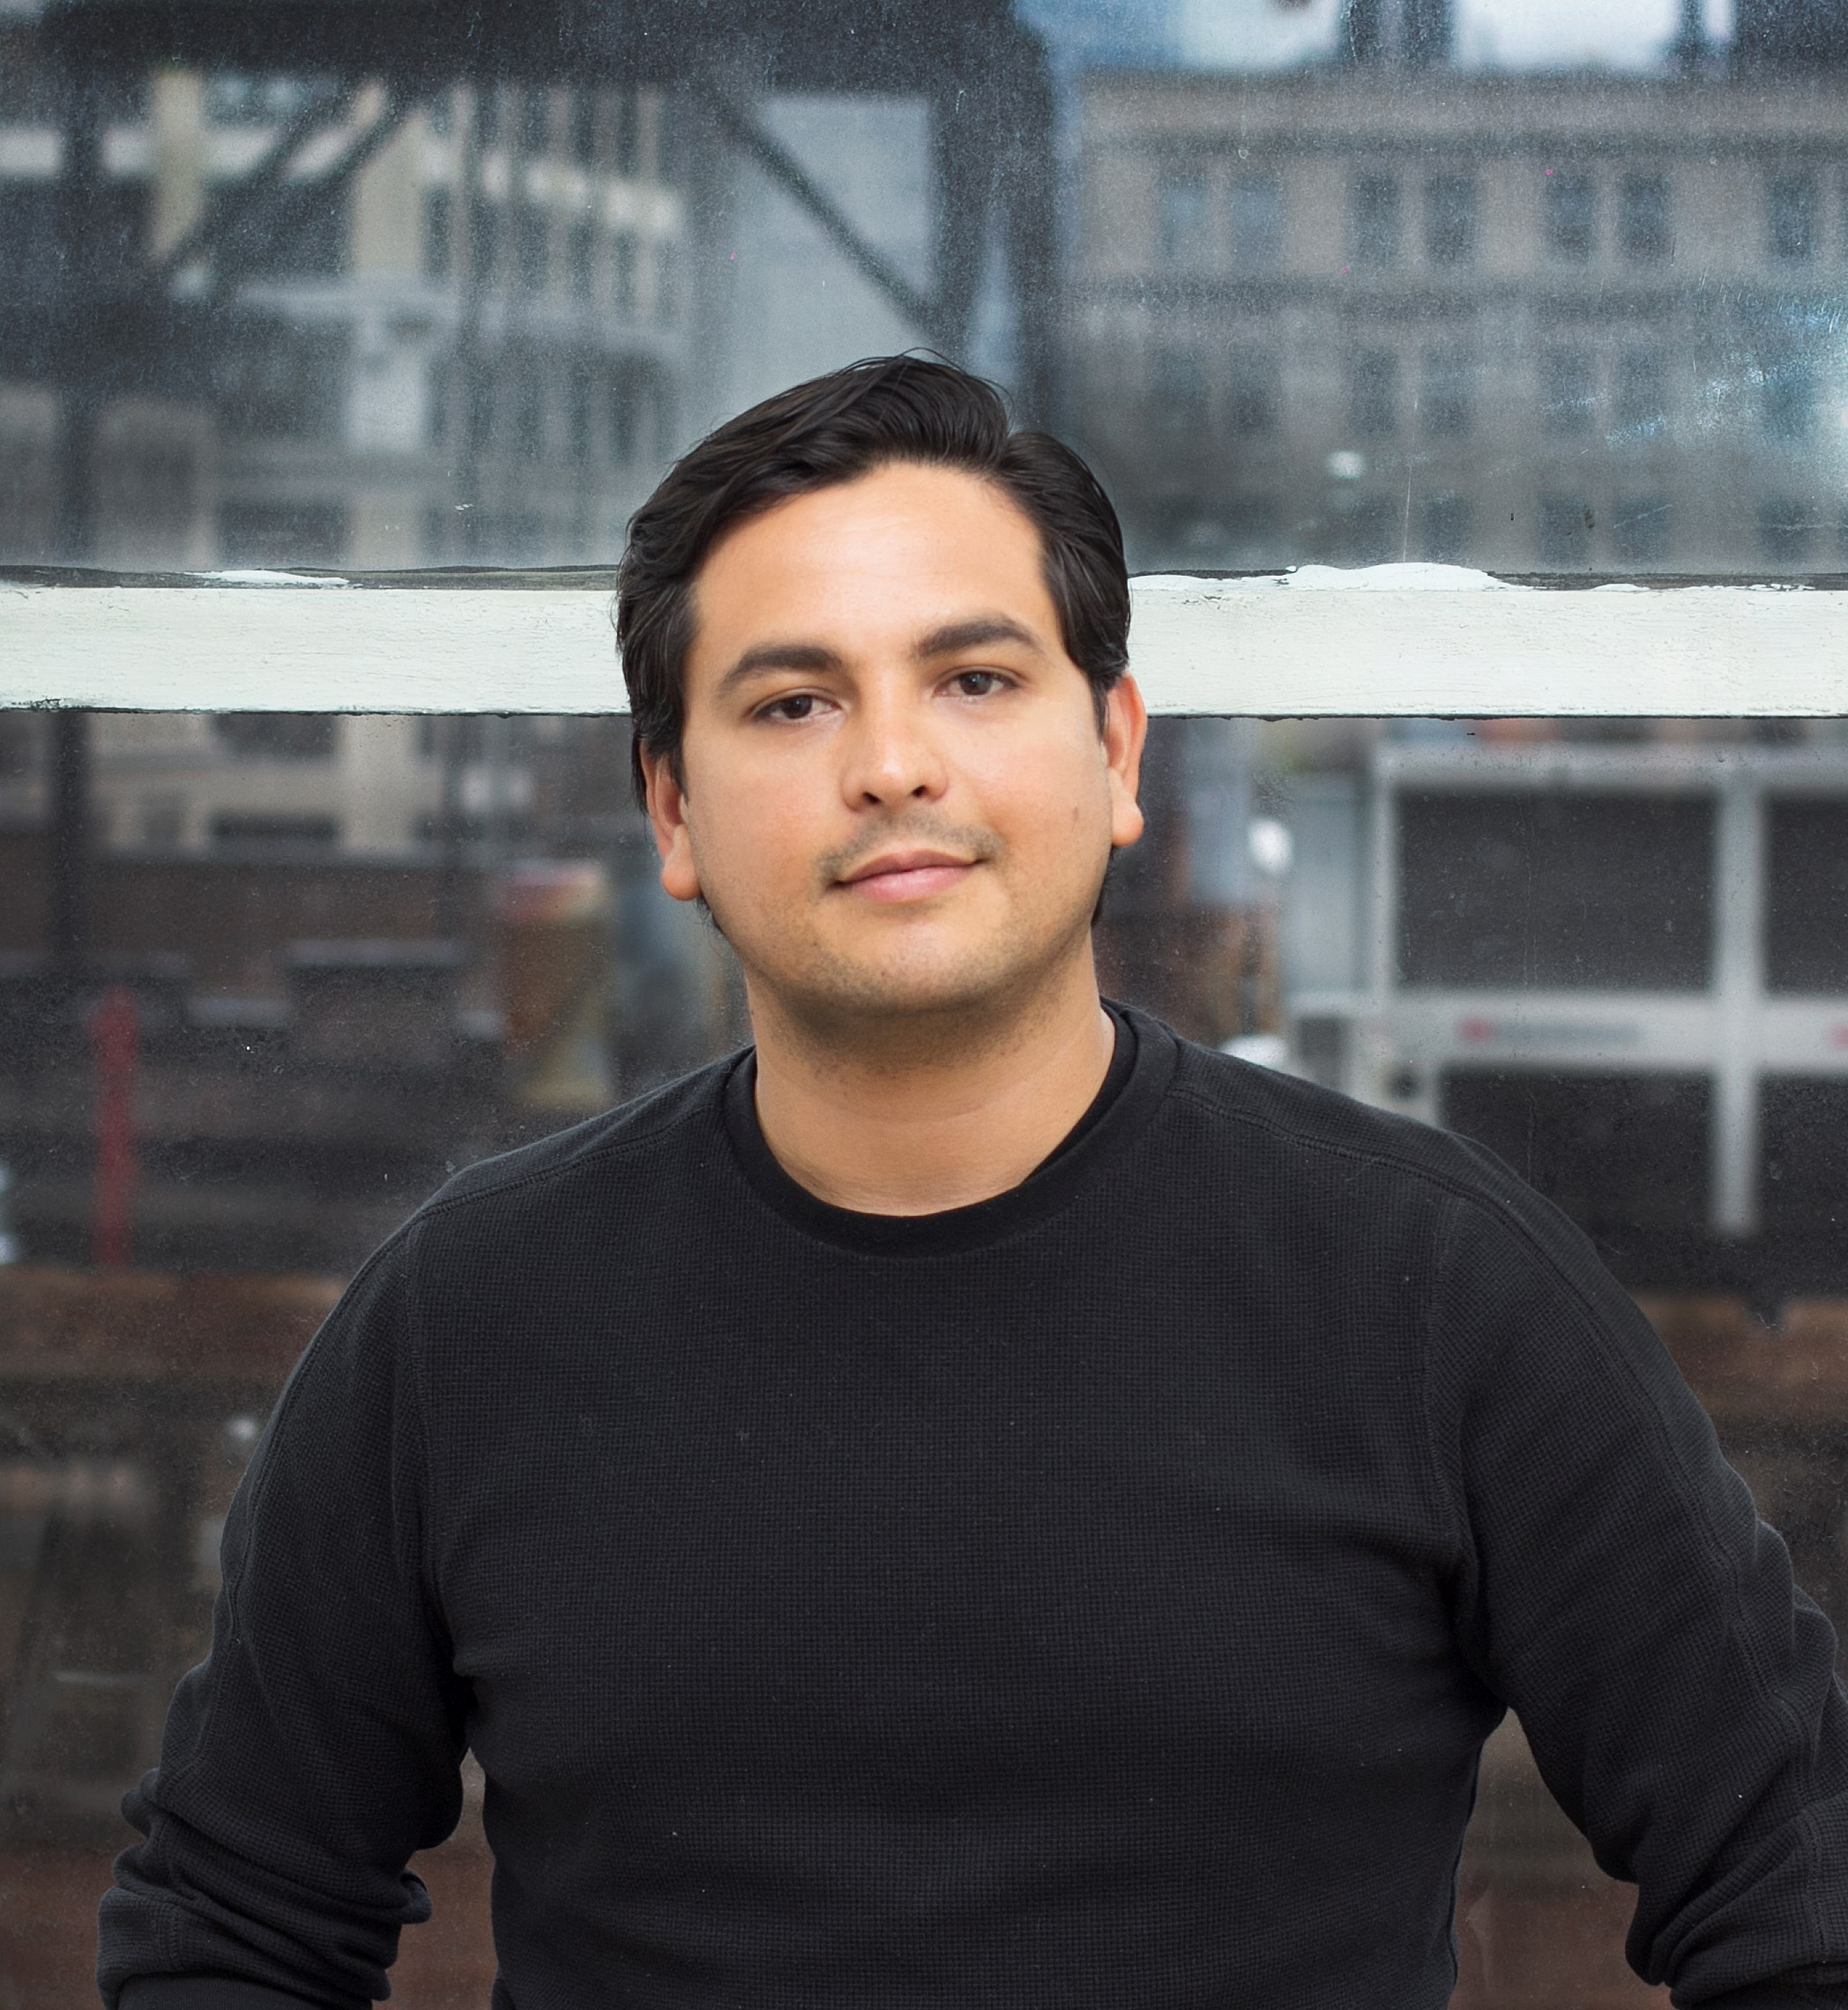 Uber co-founder and serial entrepreneur, Oscar Salazar, to present at USI's Romain College of Business speaker series